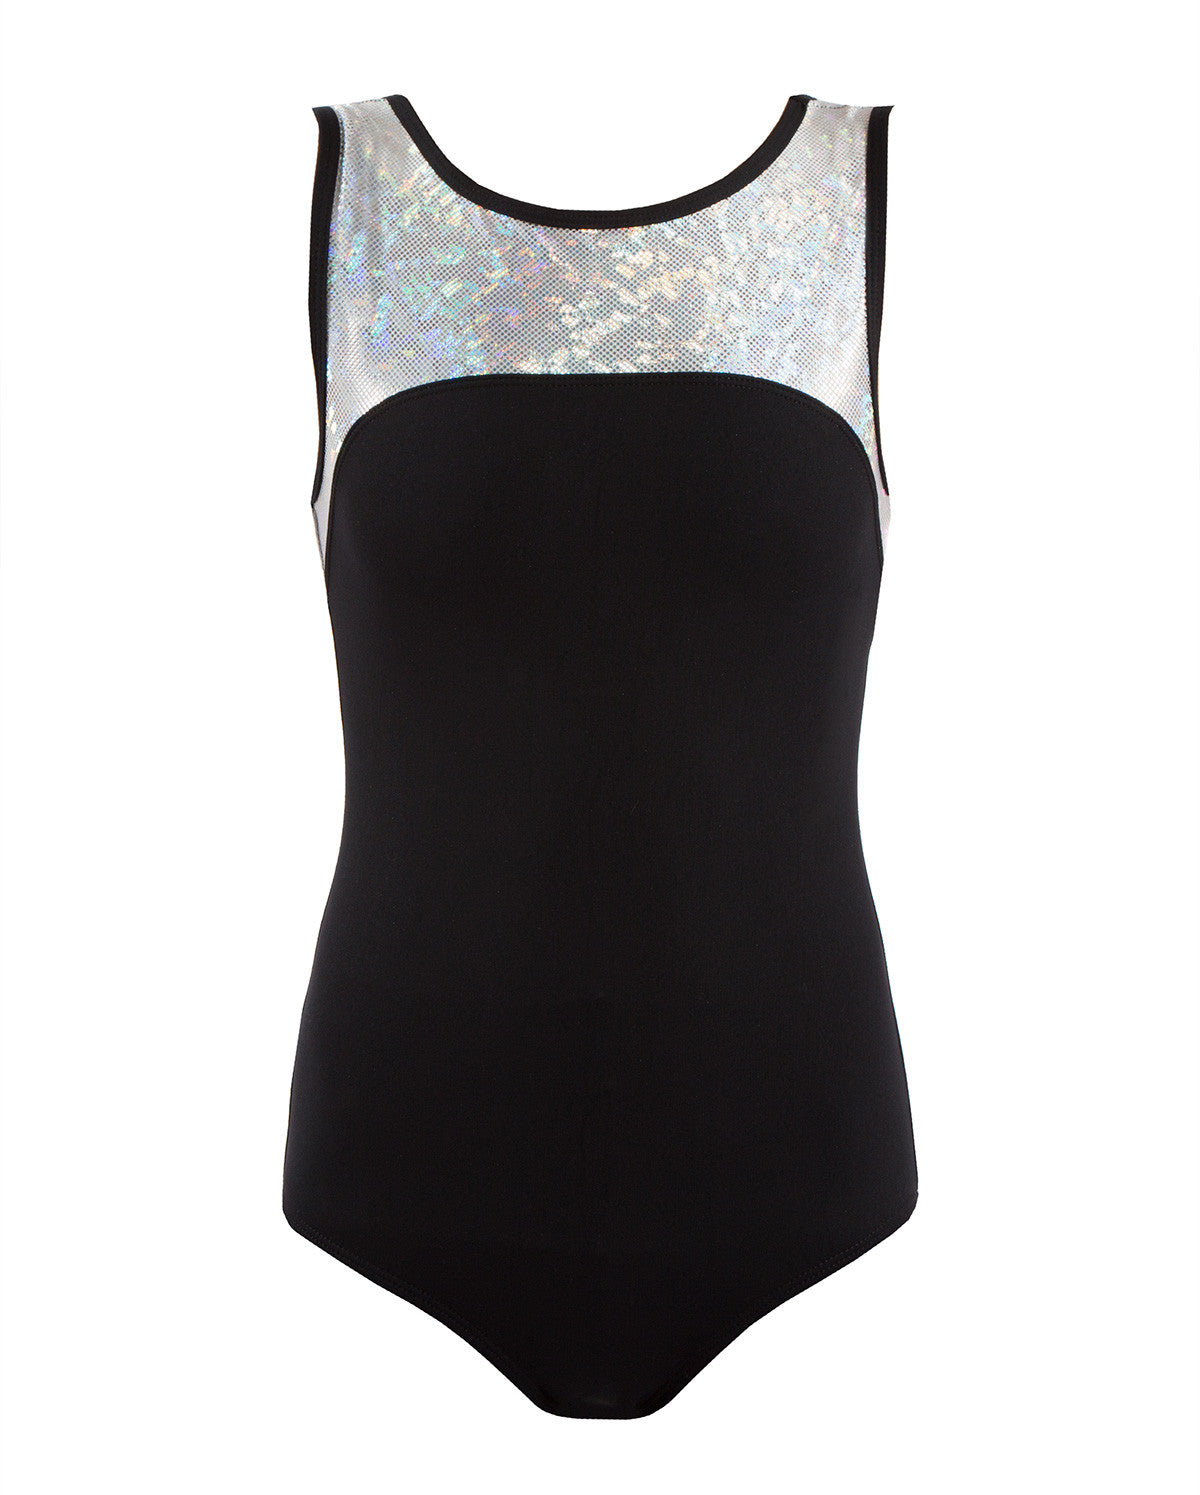 ENERGETIKS Shattered Glass - Girls Boat Neck Leotard Product ID: GCL100